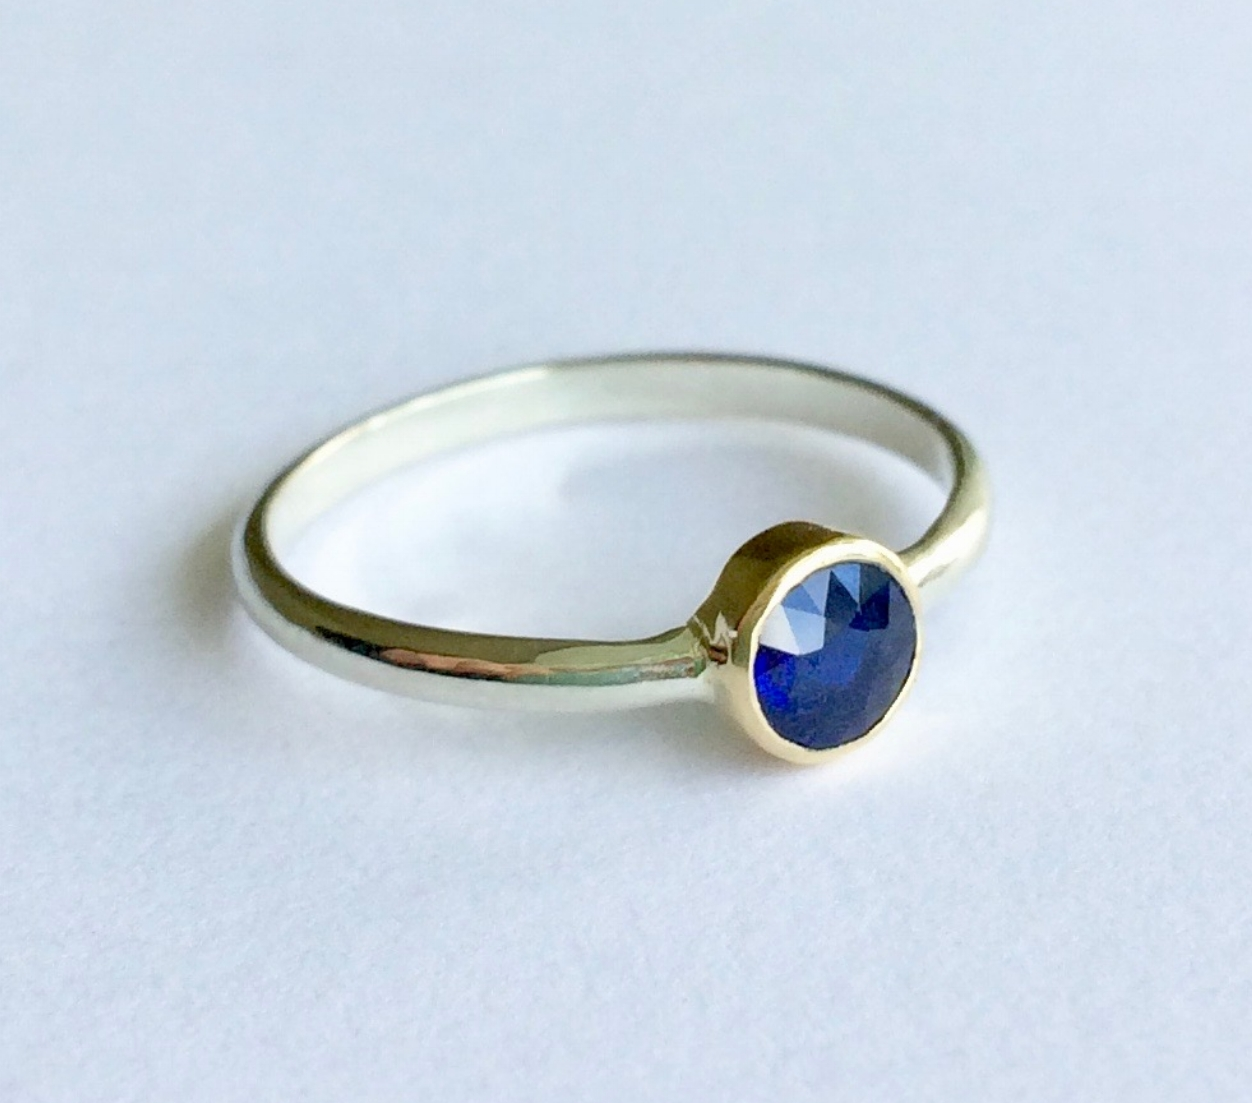 Remodelling of an Antique Family Heirloom Brooch with a Stunning Sapphire into a Pretty Ring for the wonderful and Fabulous Fiona